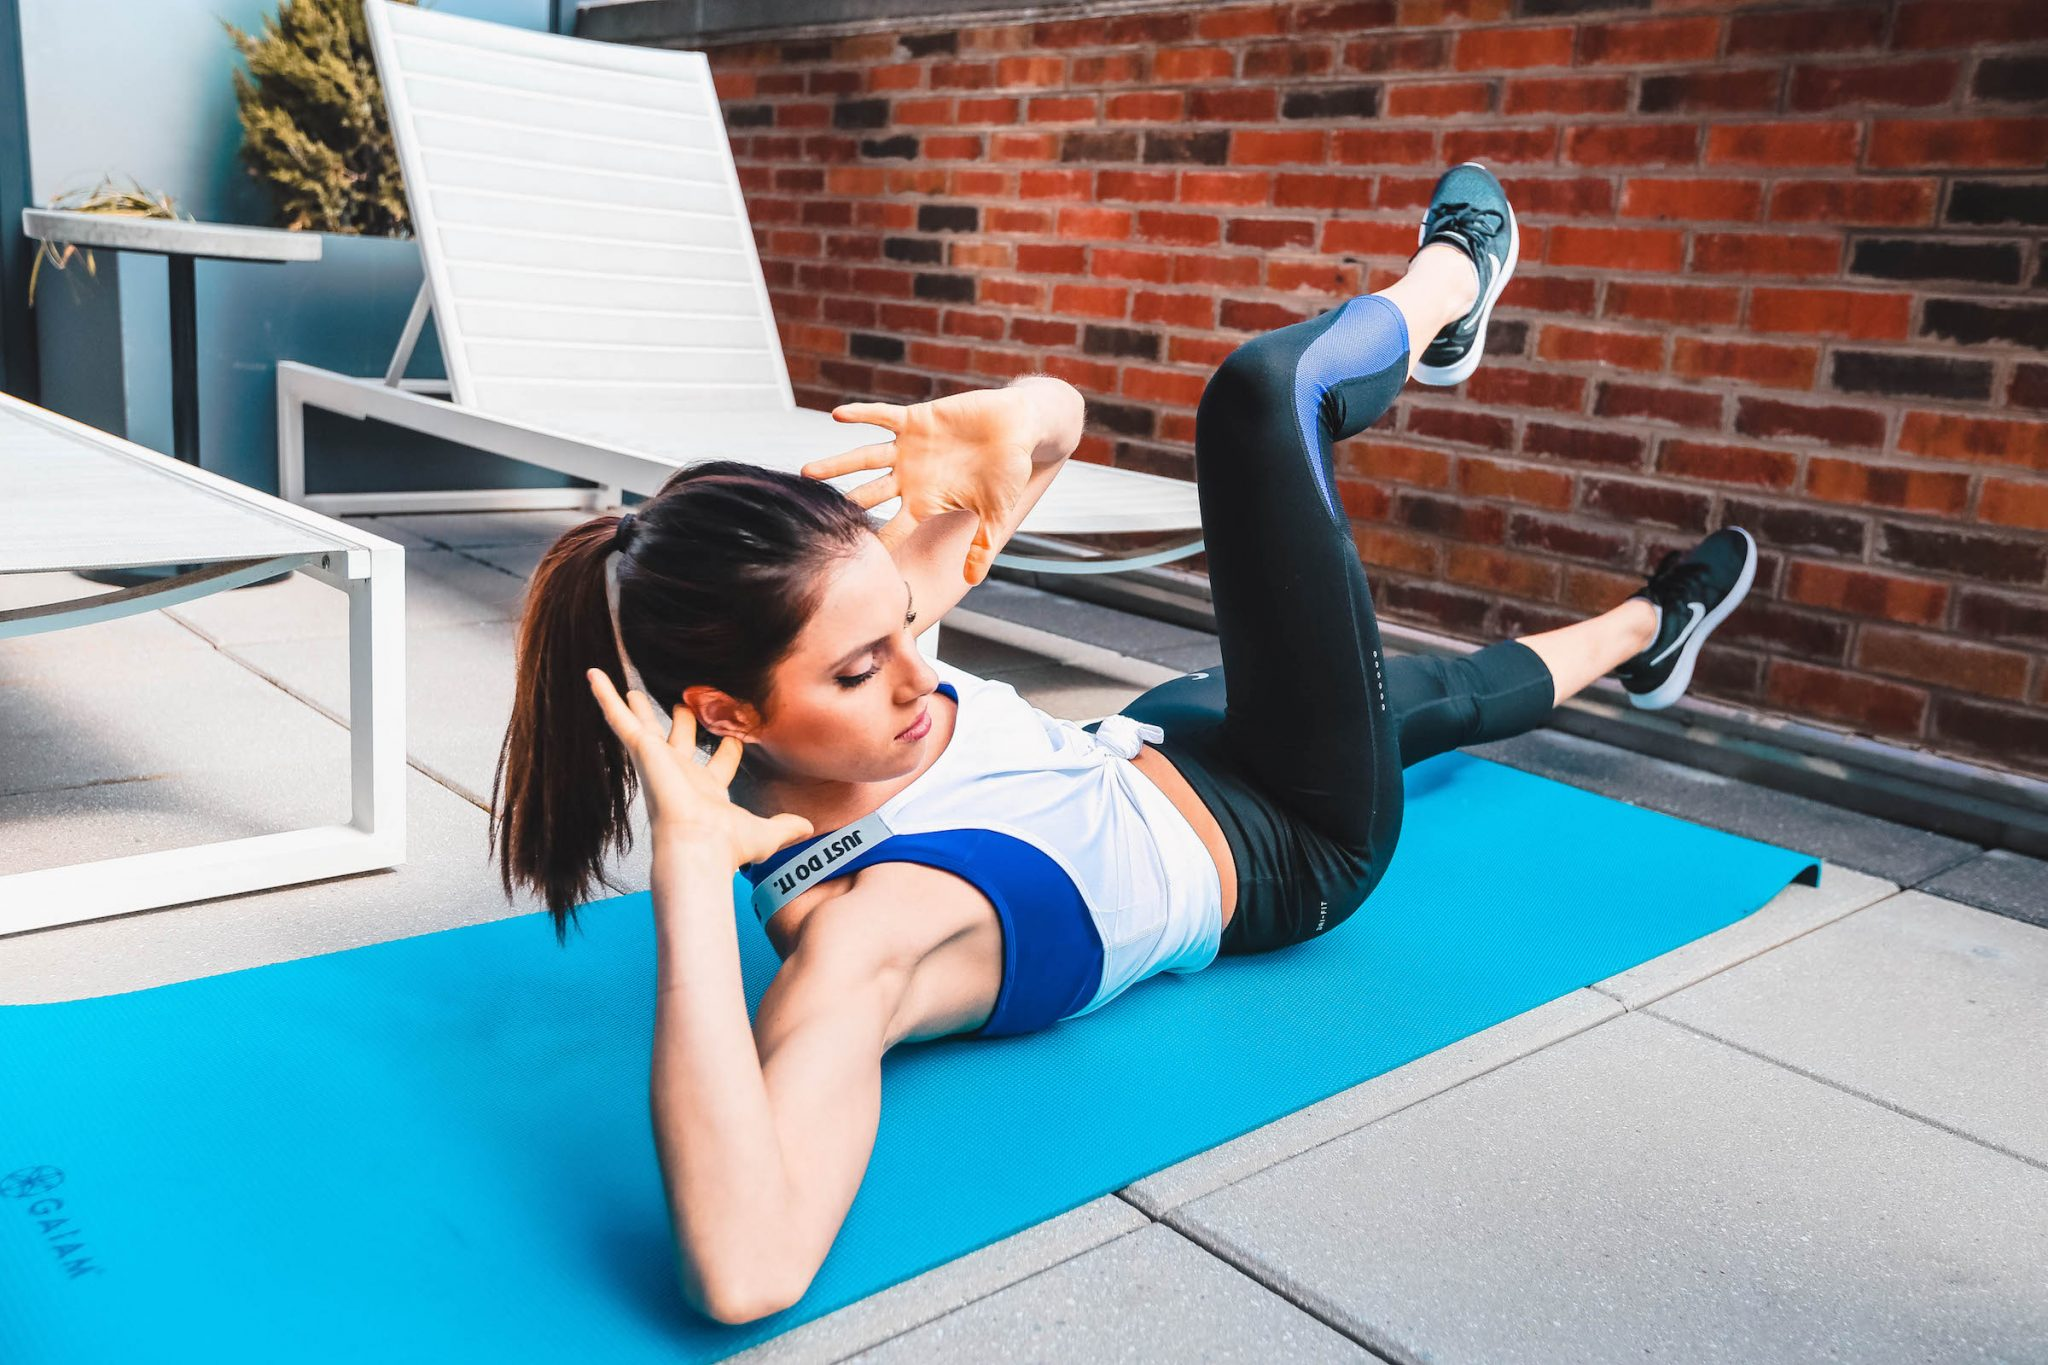 Hotel Room Fitness: Get the Workout, Skip the Gym